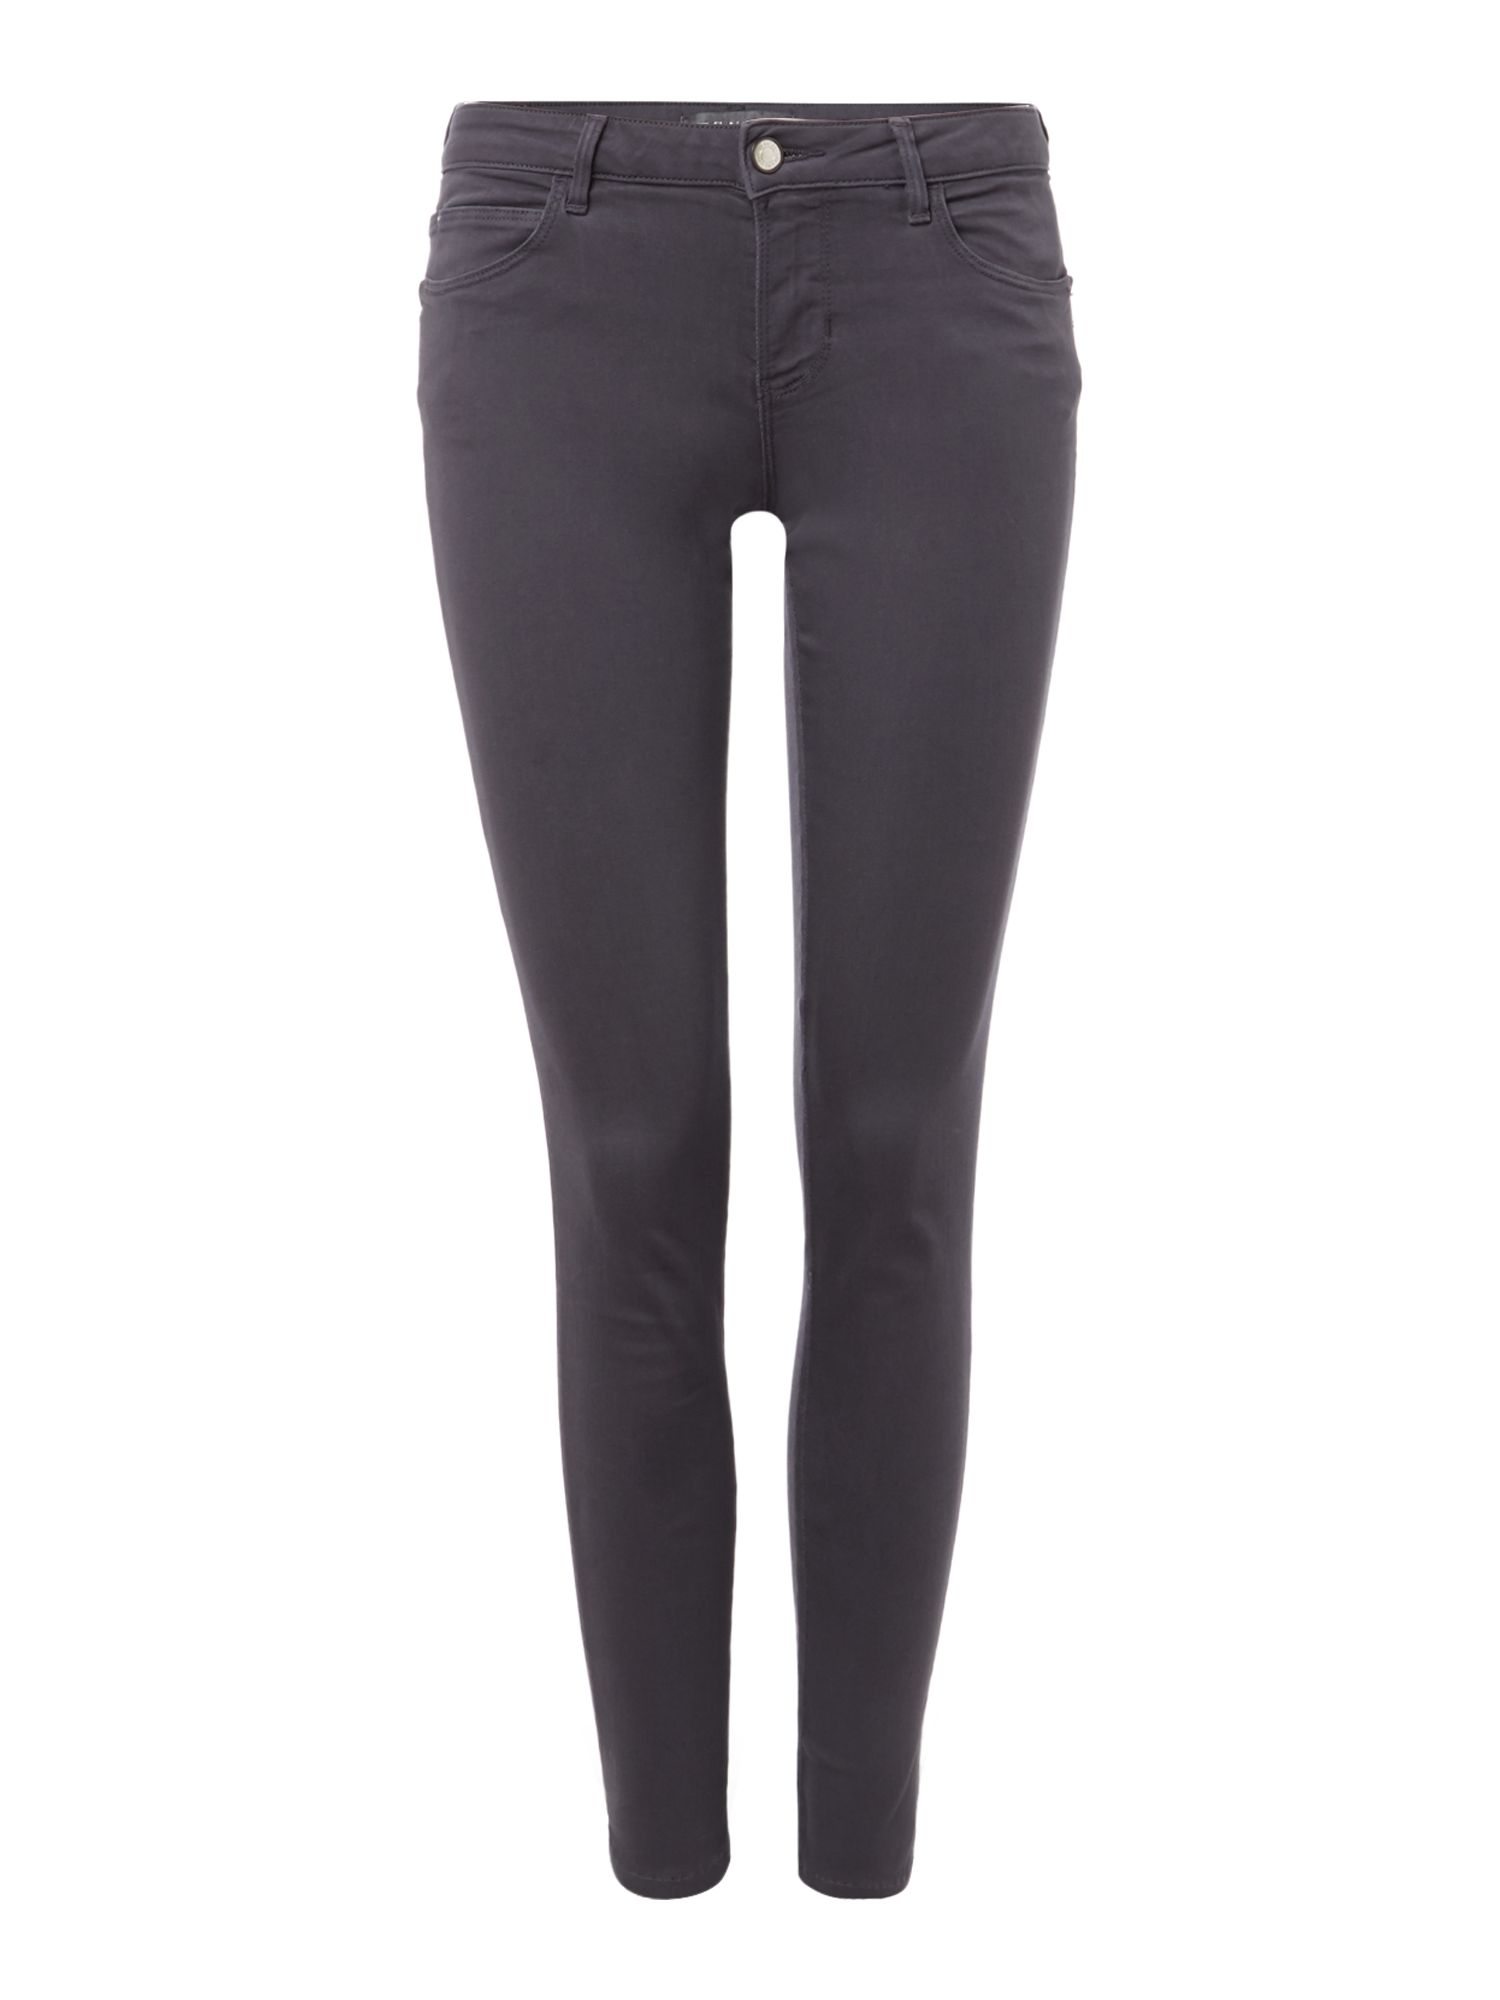 Guess Curve x Jean in Ashy Gris, Grey.